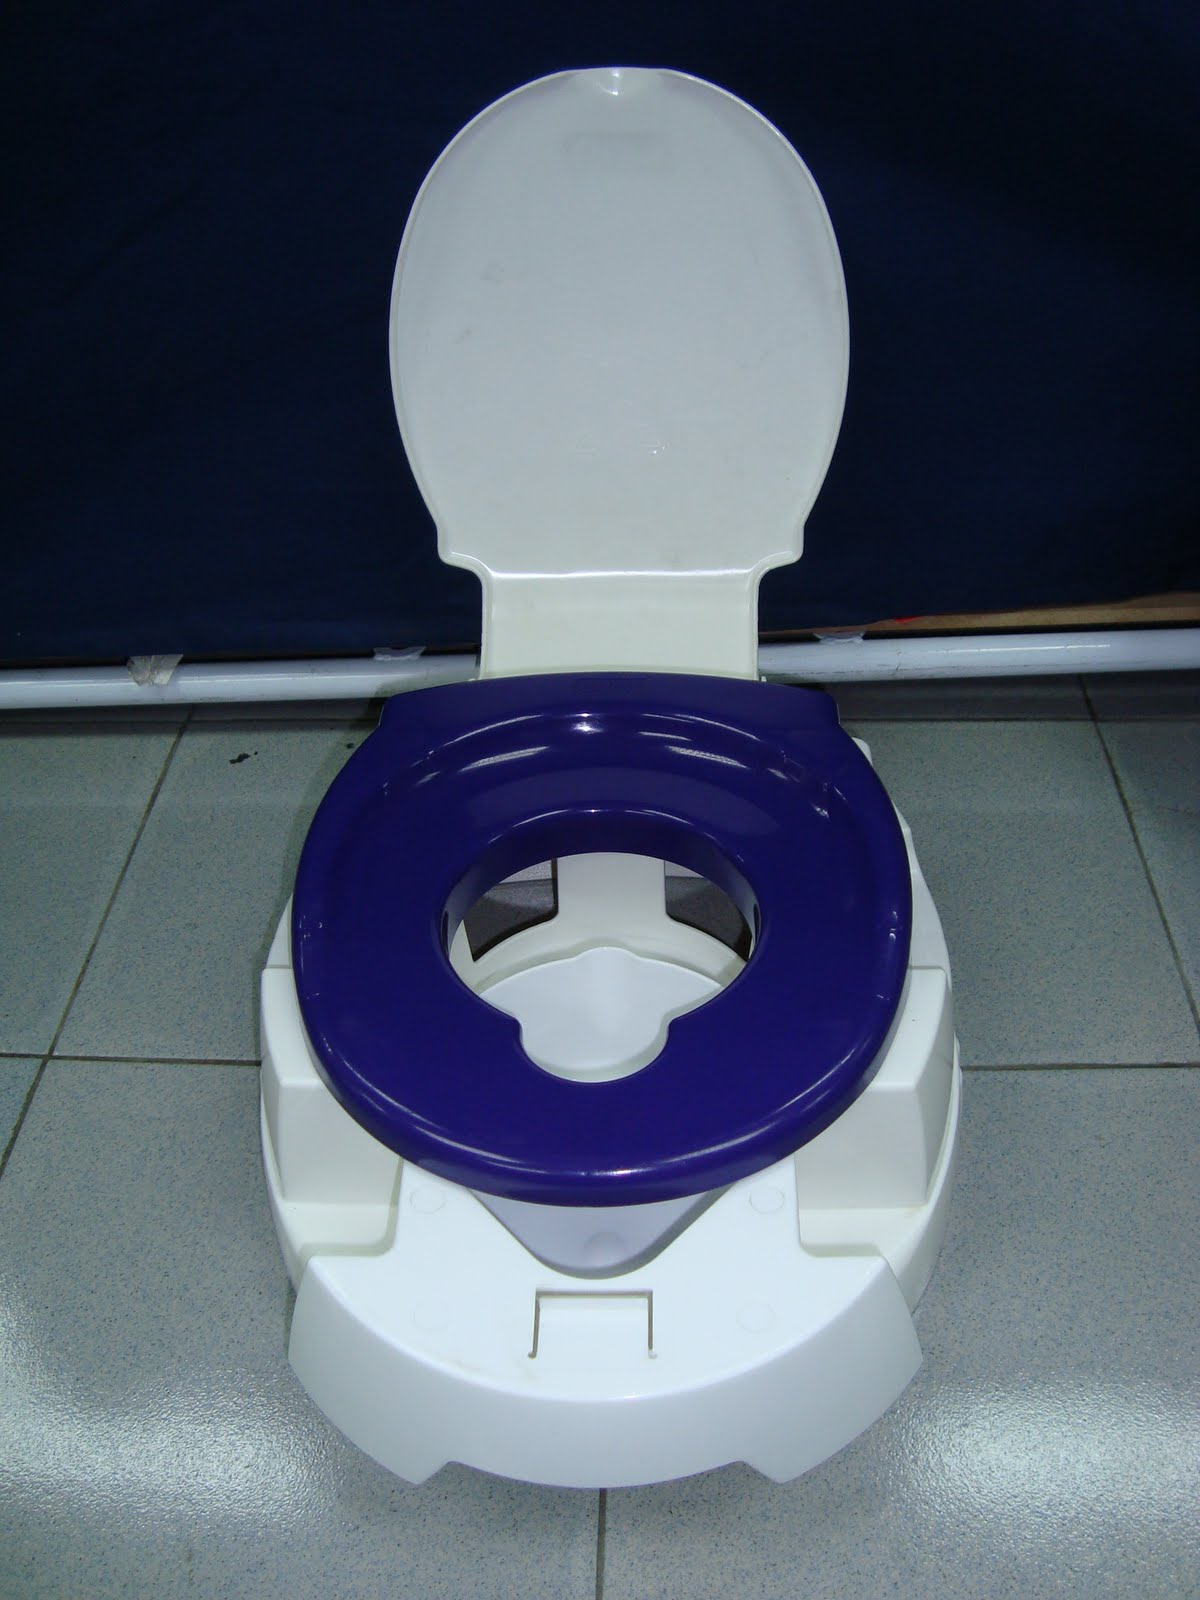 safety 1st potty chair design lahore kedai bundle toys thetottoys trainer